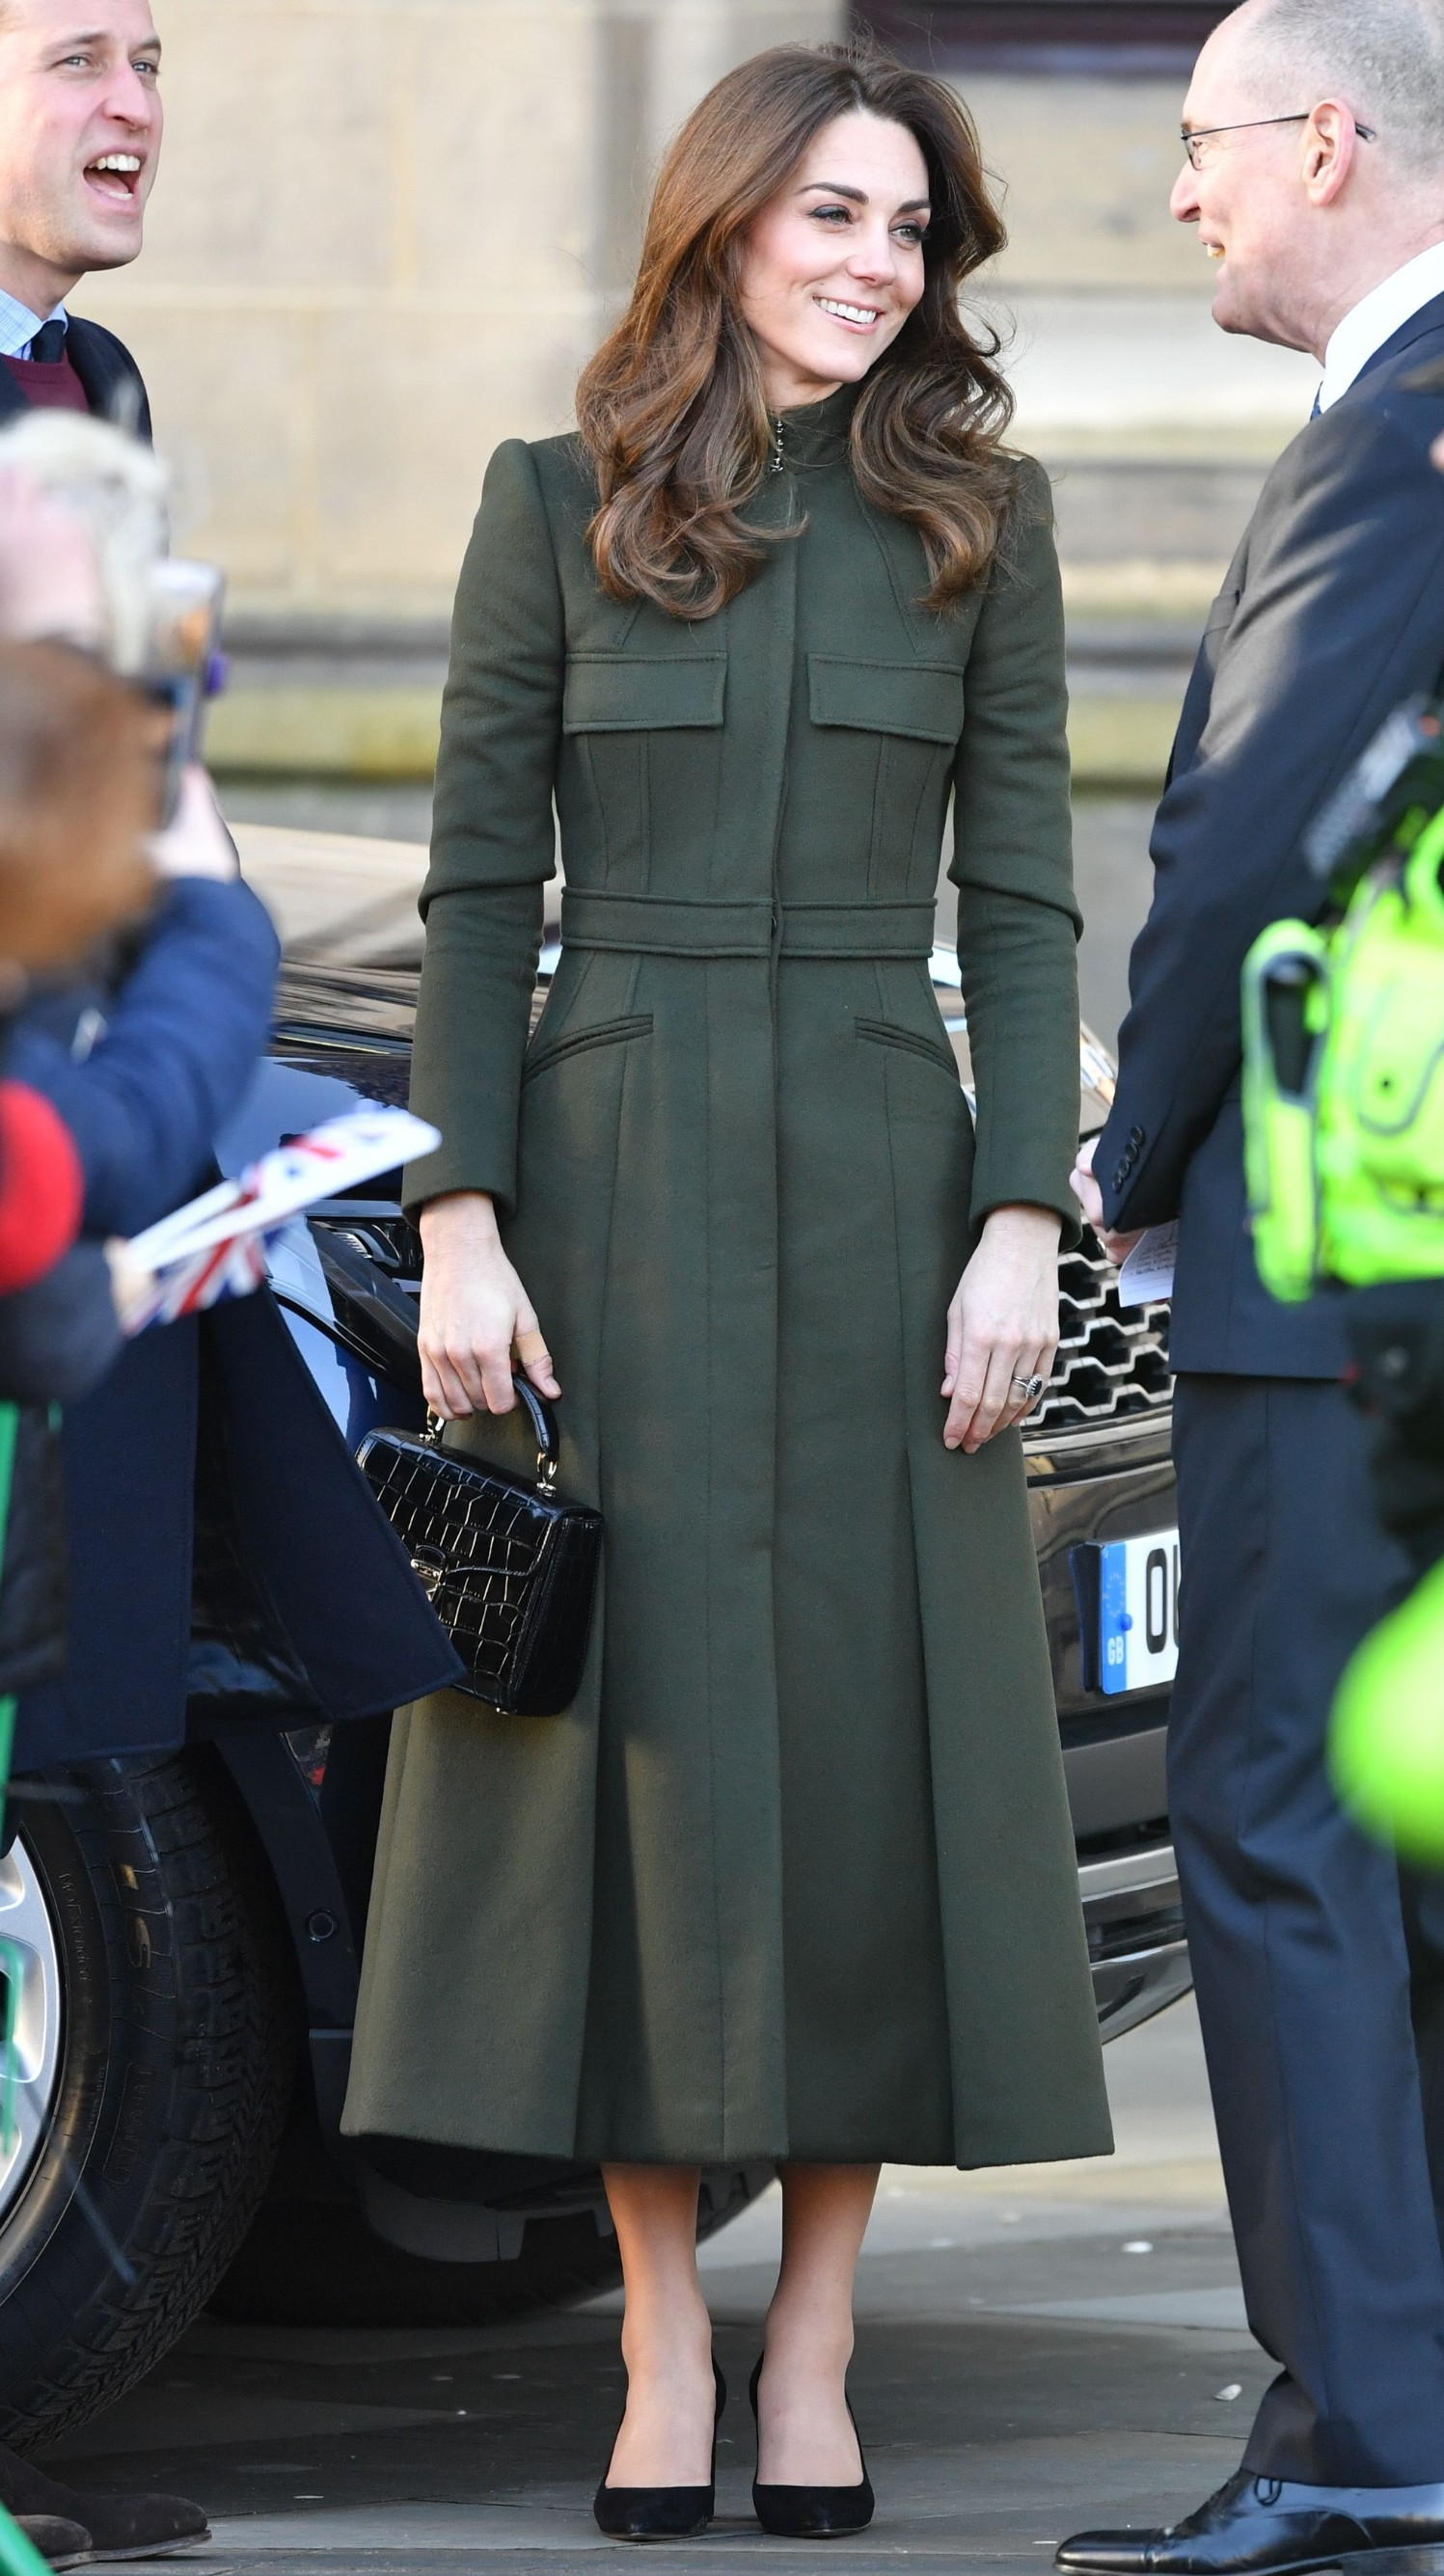 Catherine Duchess of Cambridge Prince William and Catherine Duchess of Cambridge visit to Bradford, UK - 15 Jan 2020, Image: 492901232, License: Rights-managed, Restrictions: , Model Release: no, Credit line: Tim Rooke / Shutterstock Editorial / Profimedia